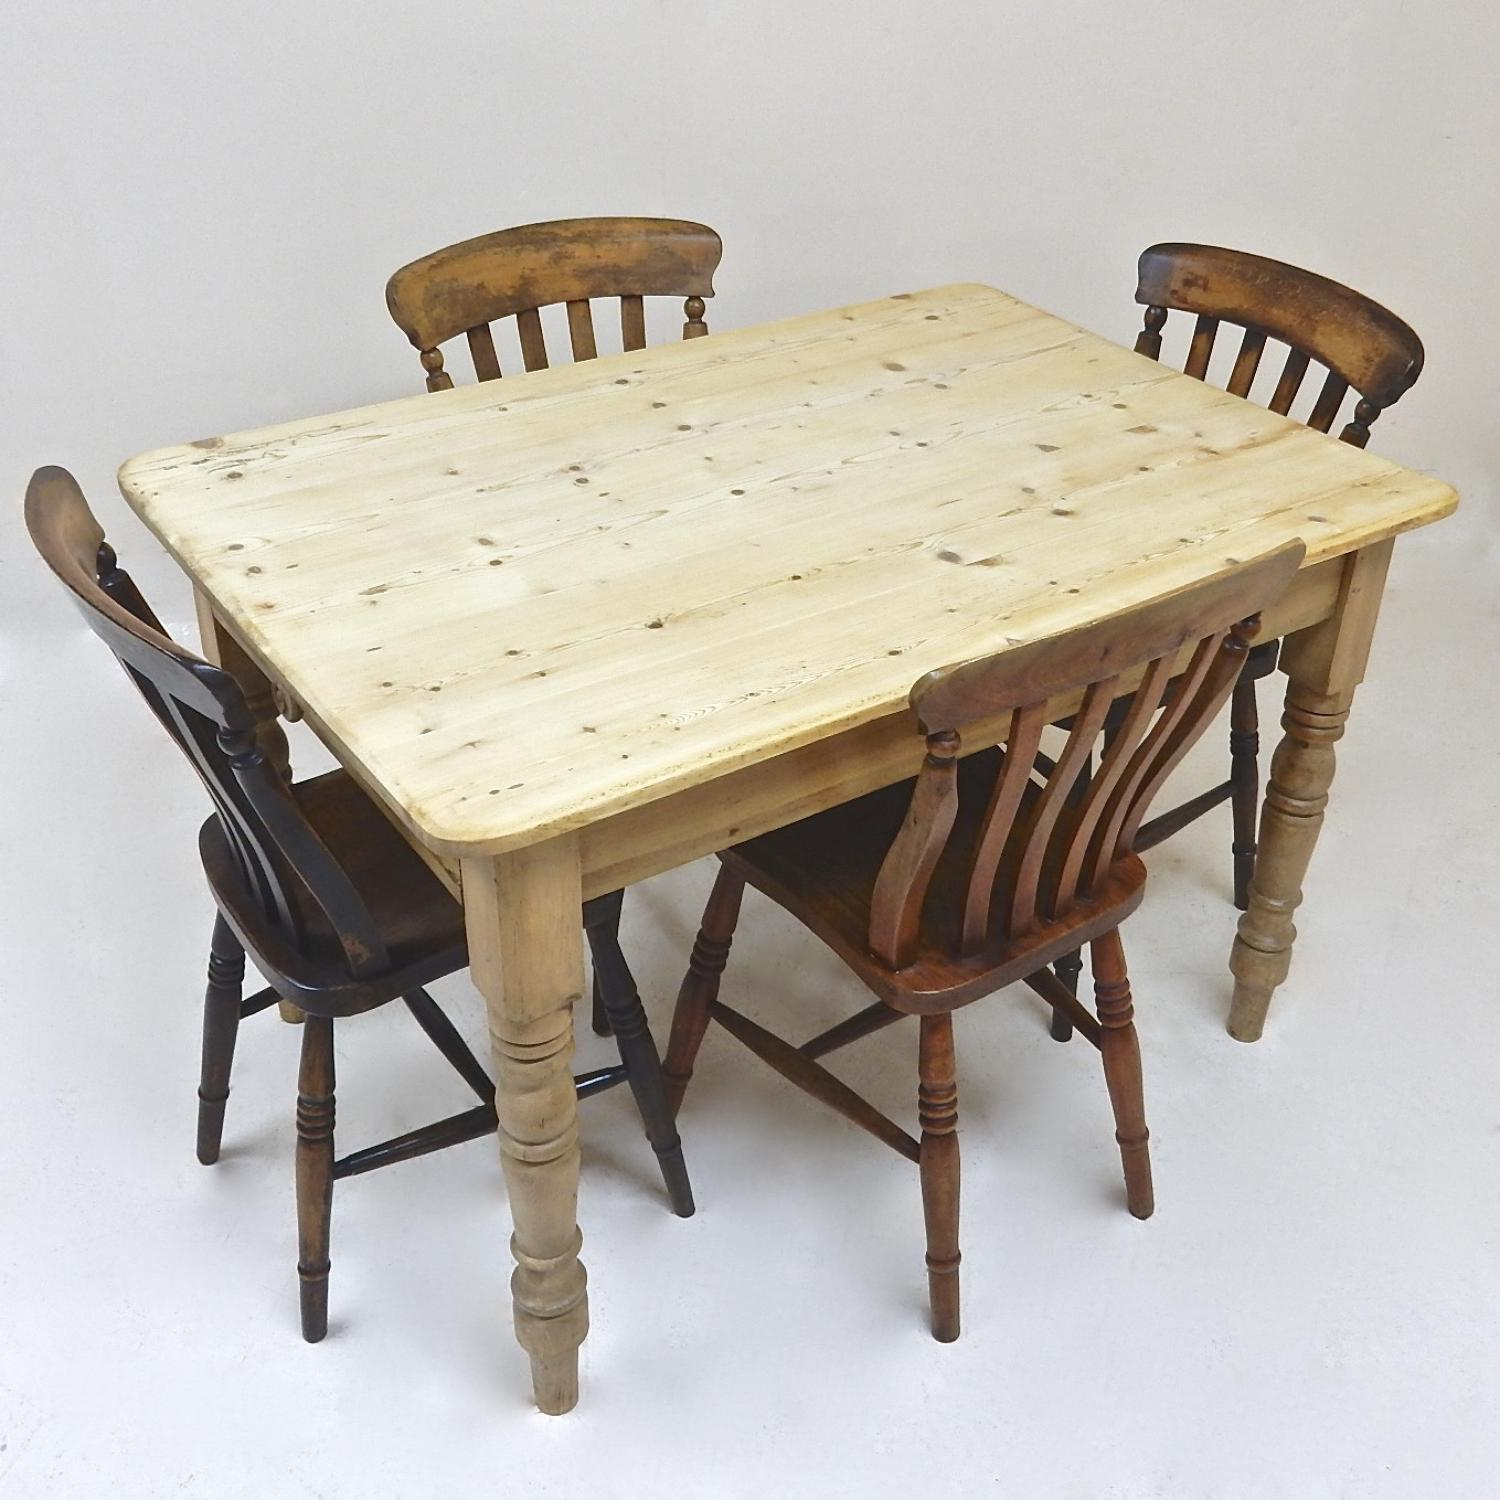 Pine Kitchen Table And Chairs Pine Kitchen Table In Tables And Chairs